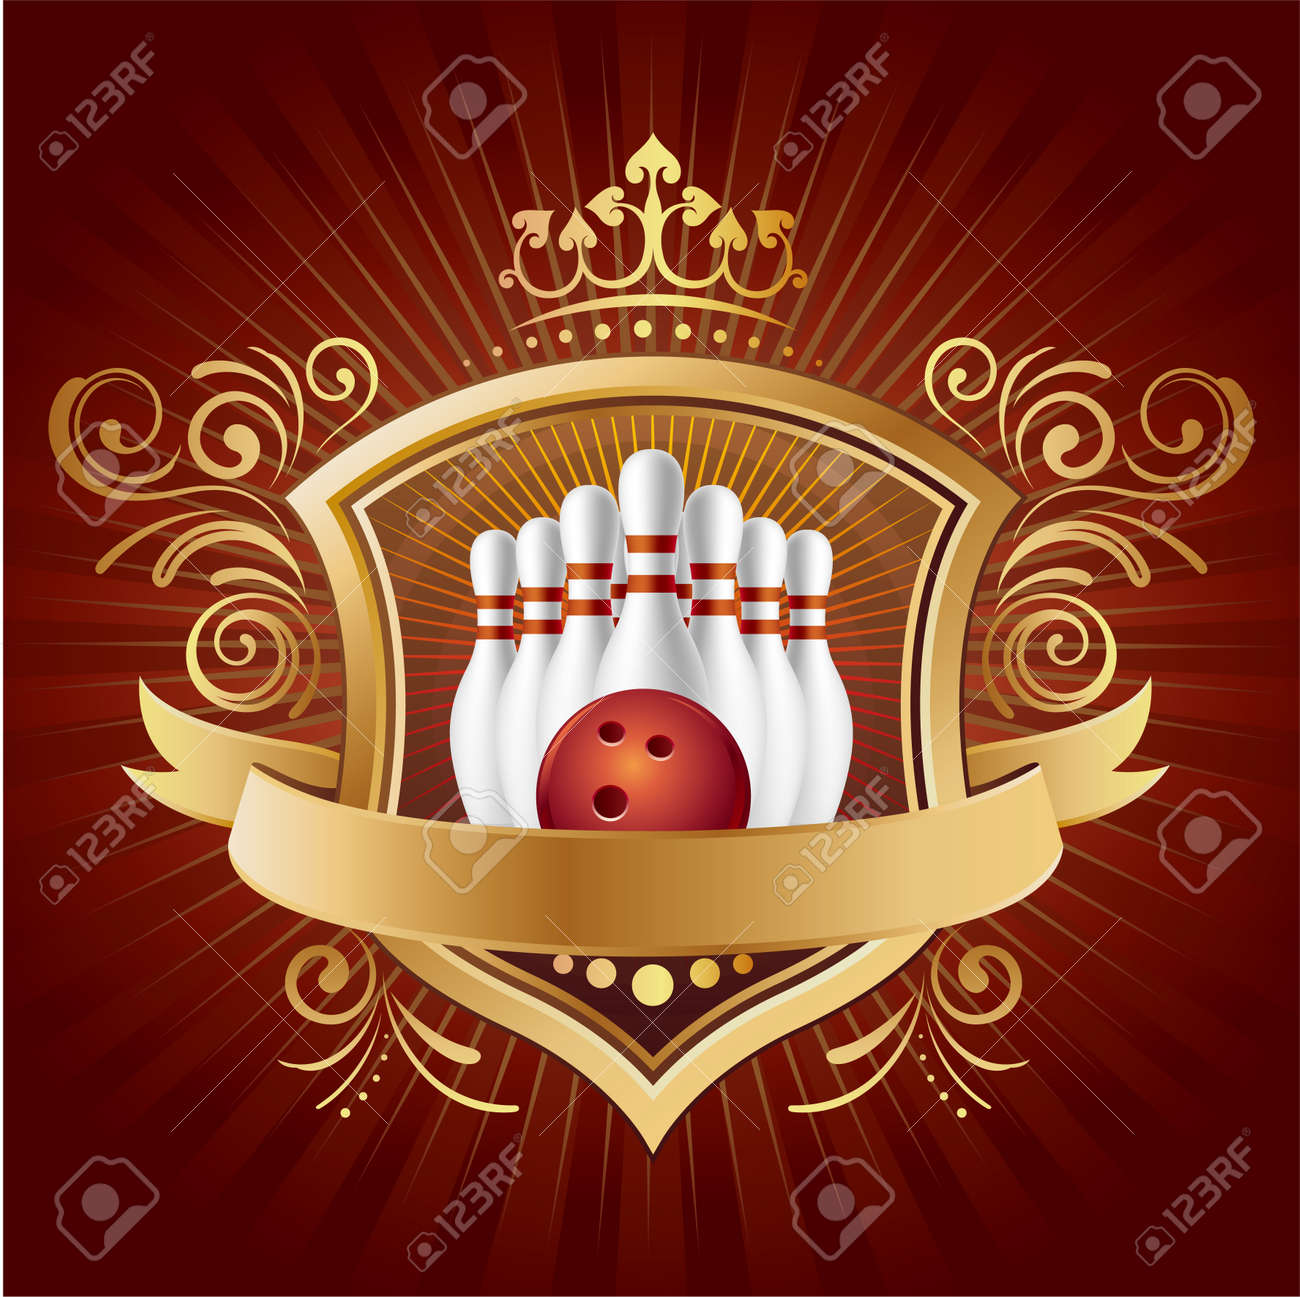 bowling,shield,crown,abstract background Stock Vector - 7580414